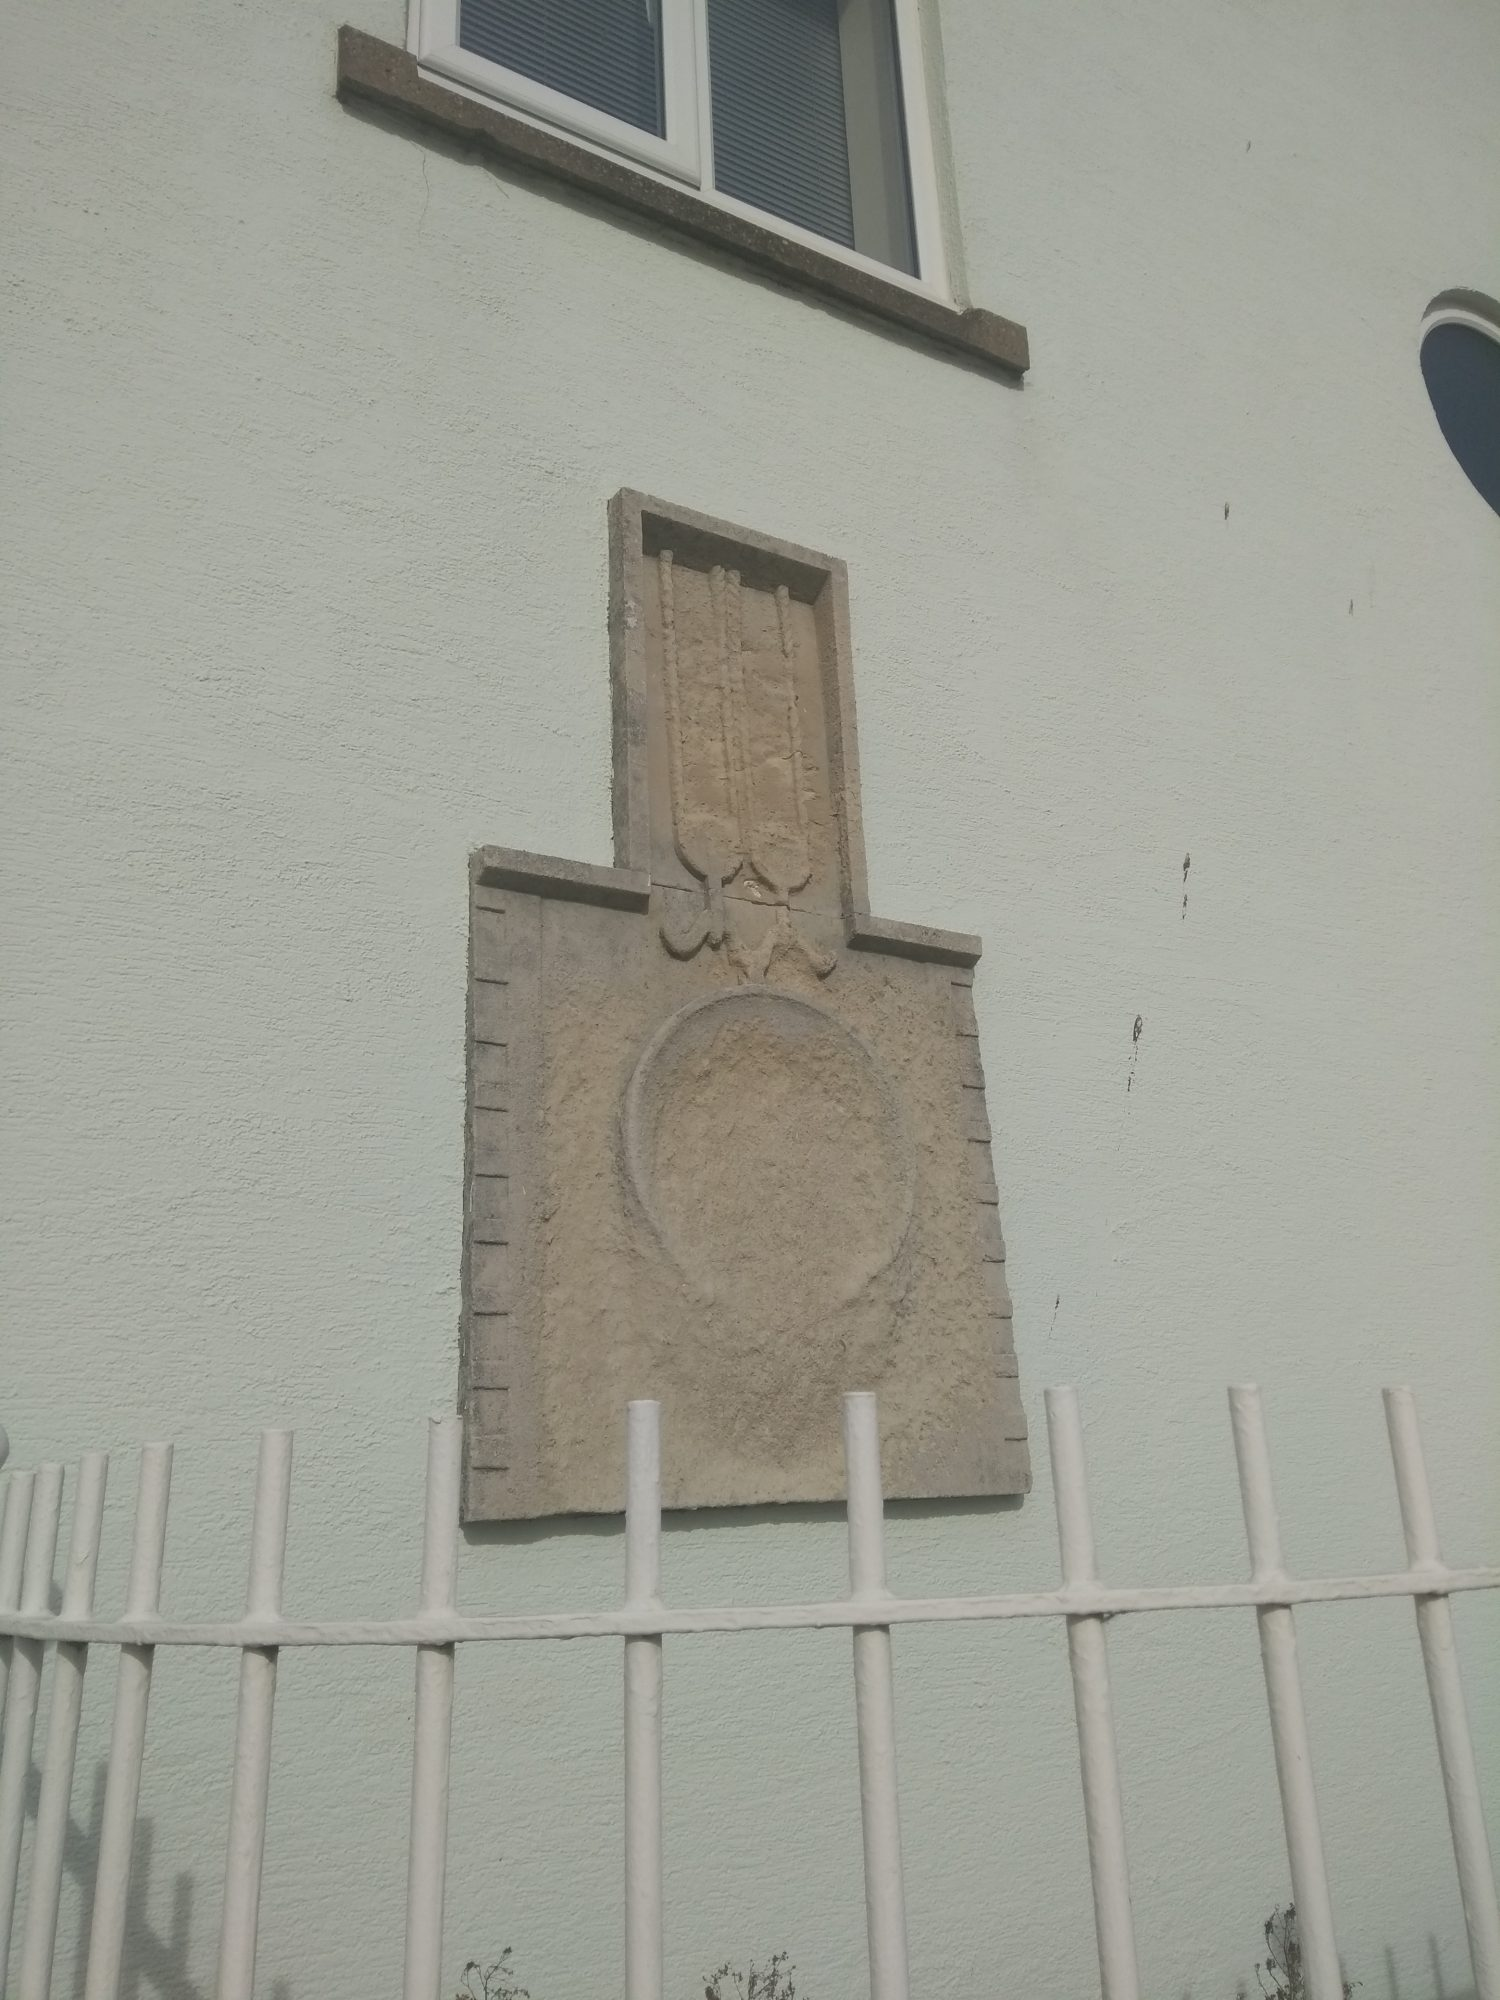 An eroded wall plaque in Swansea's Maritime Quarter.